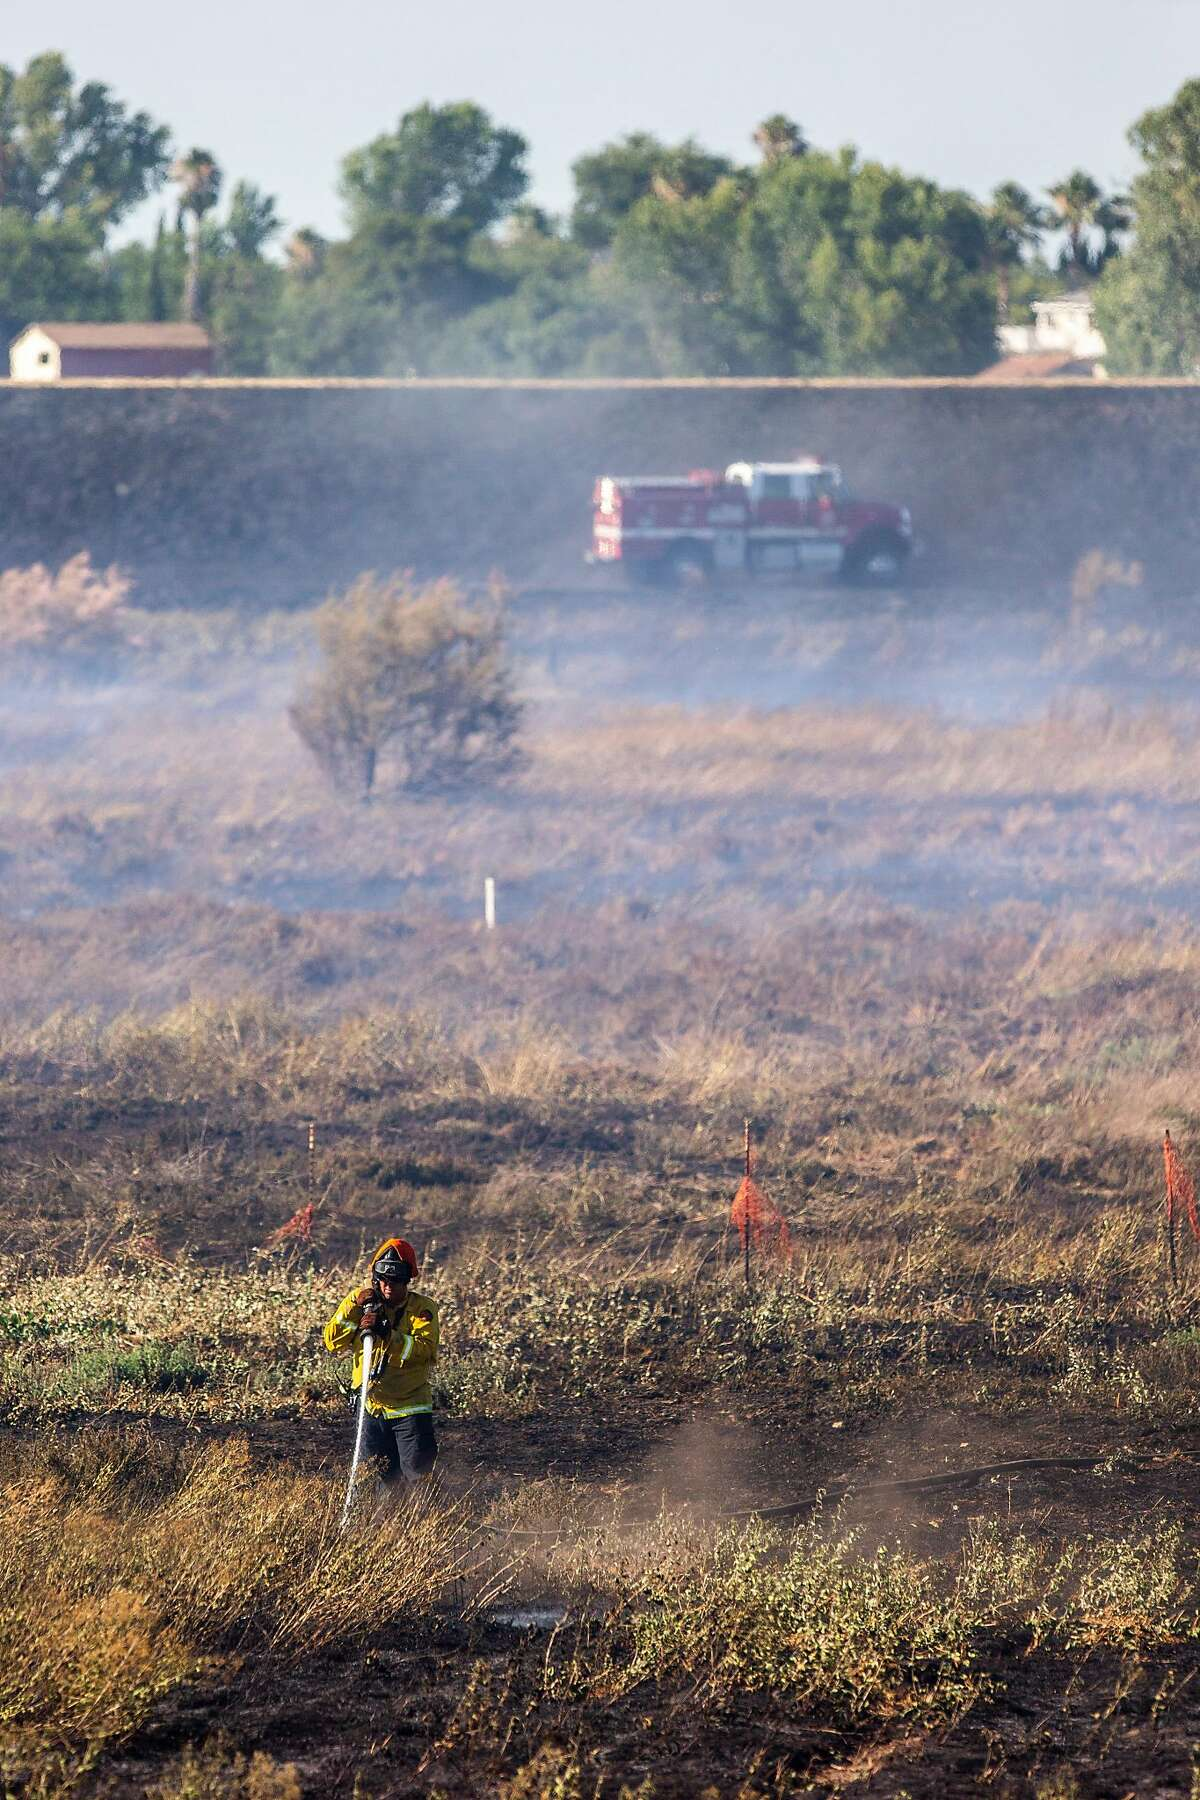 East Contra Costa Fire Protection District puts out a grass fire at E. Cypress Road and Sandmound Boulevard on Tuesday, July 7, 2020, in Oakley, Calif. This is expected to be an intense fire season in California.